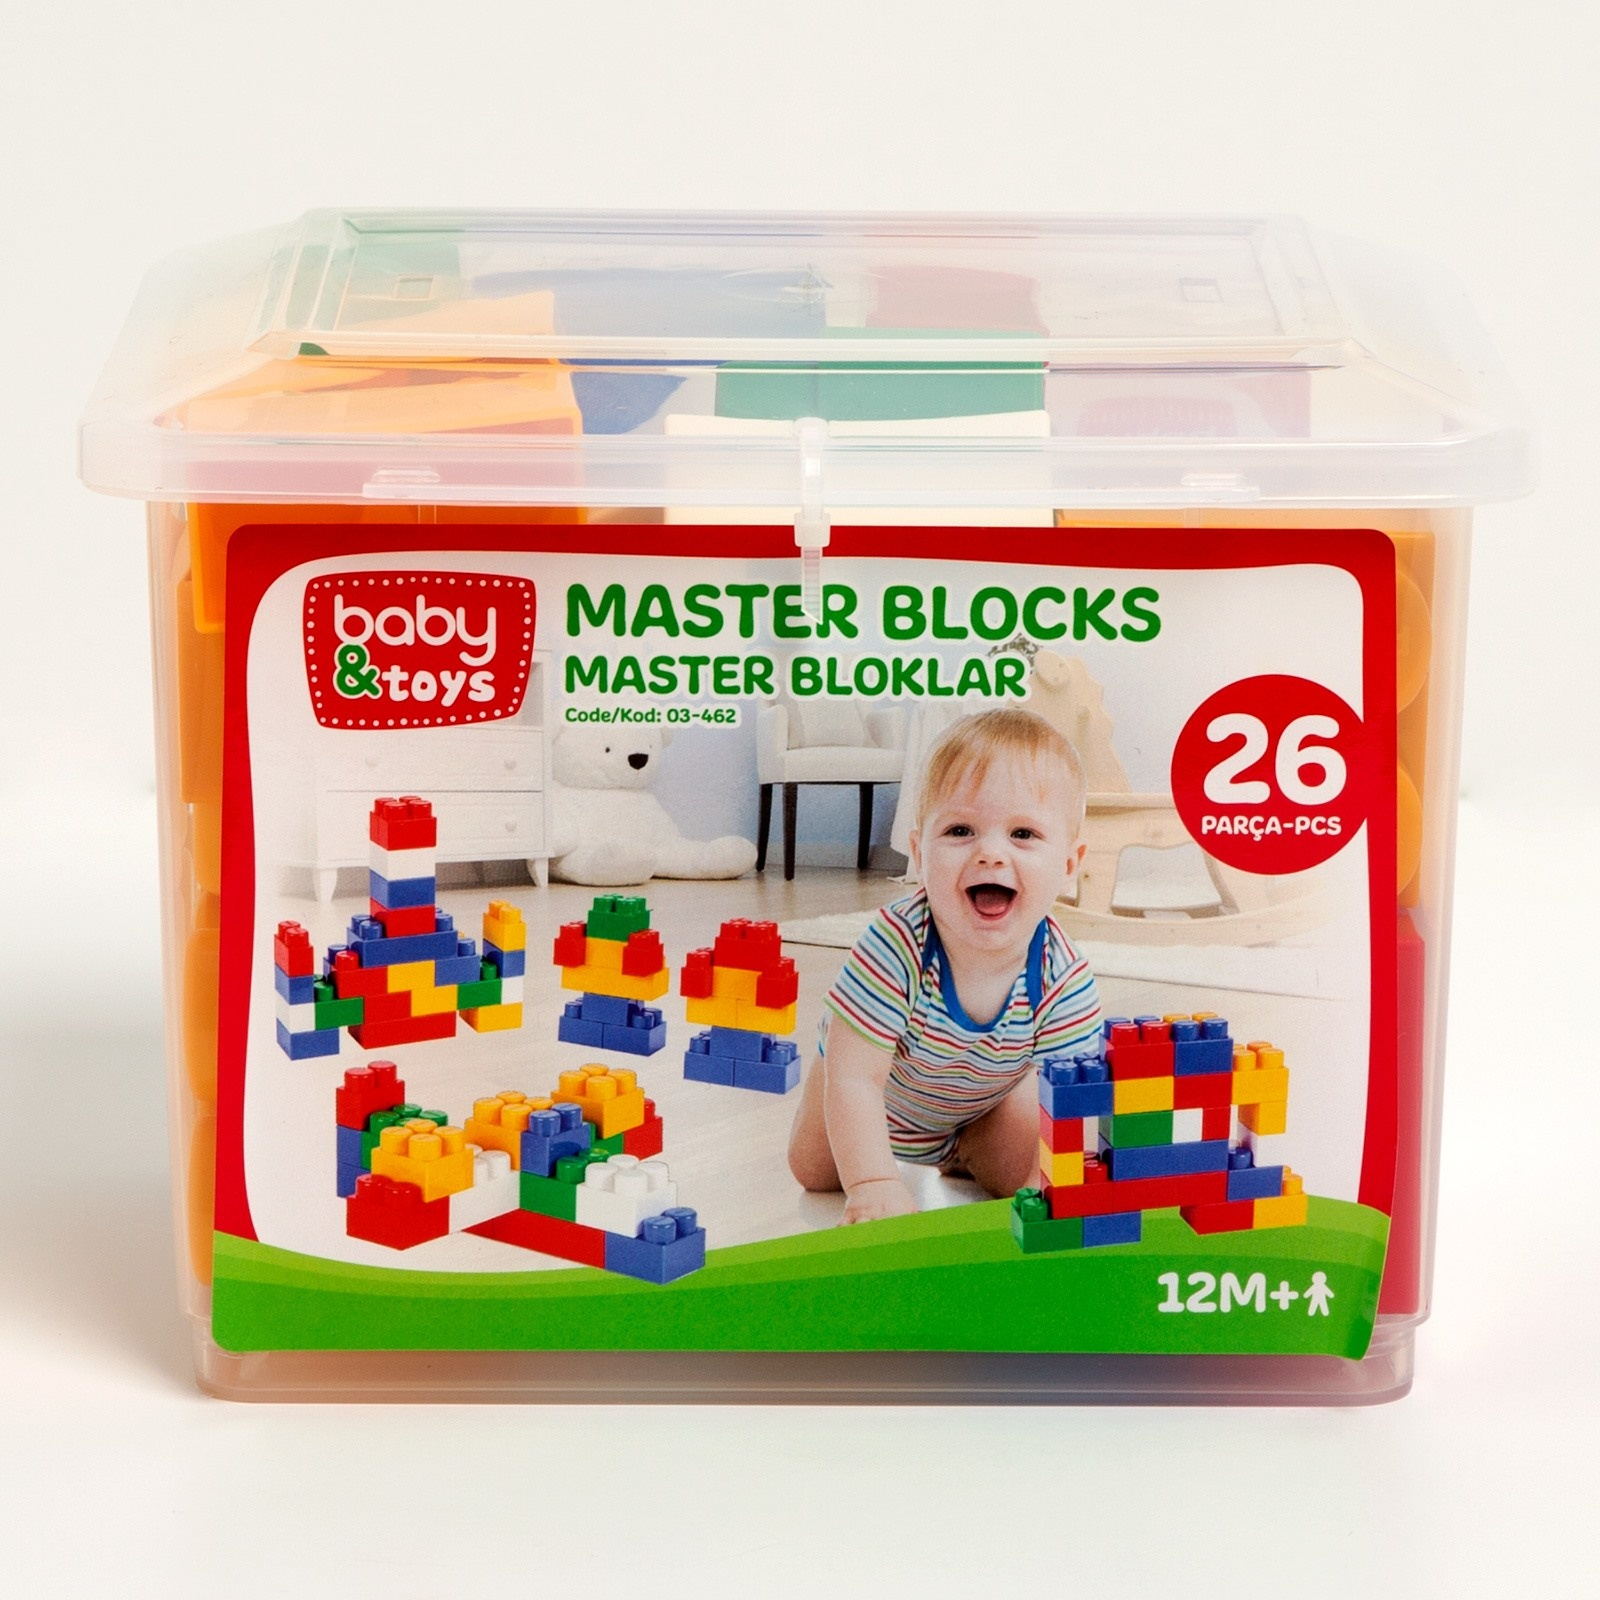 Ebebek Baby&toys Baby Master Blocks 26 Pieces